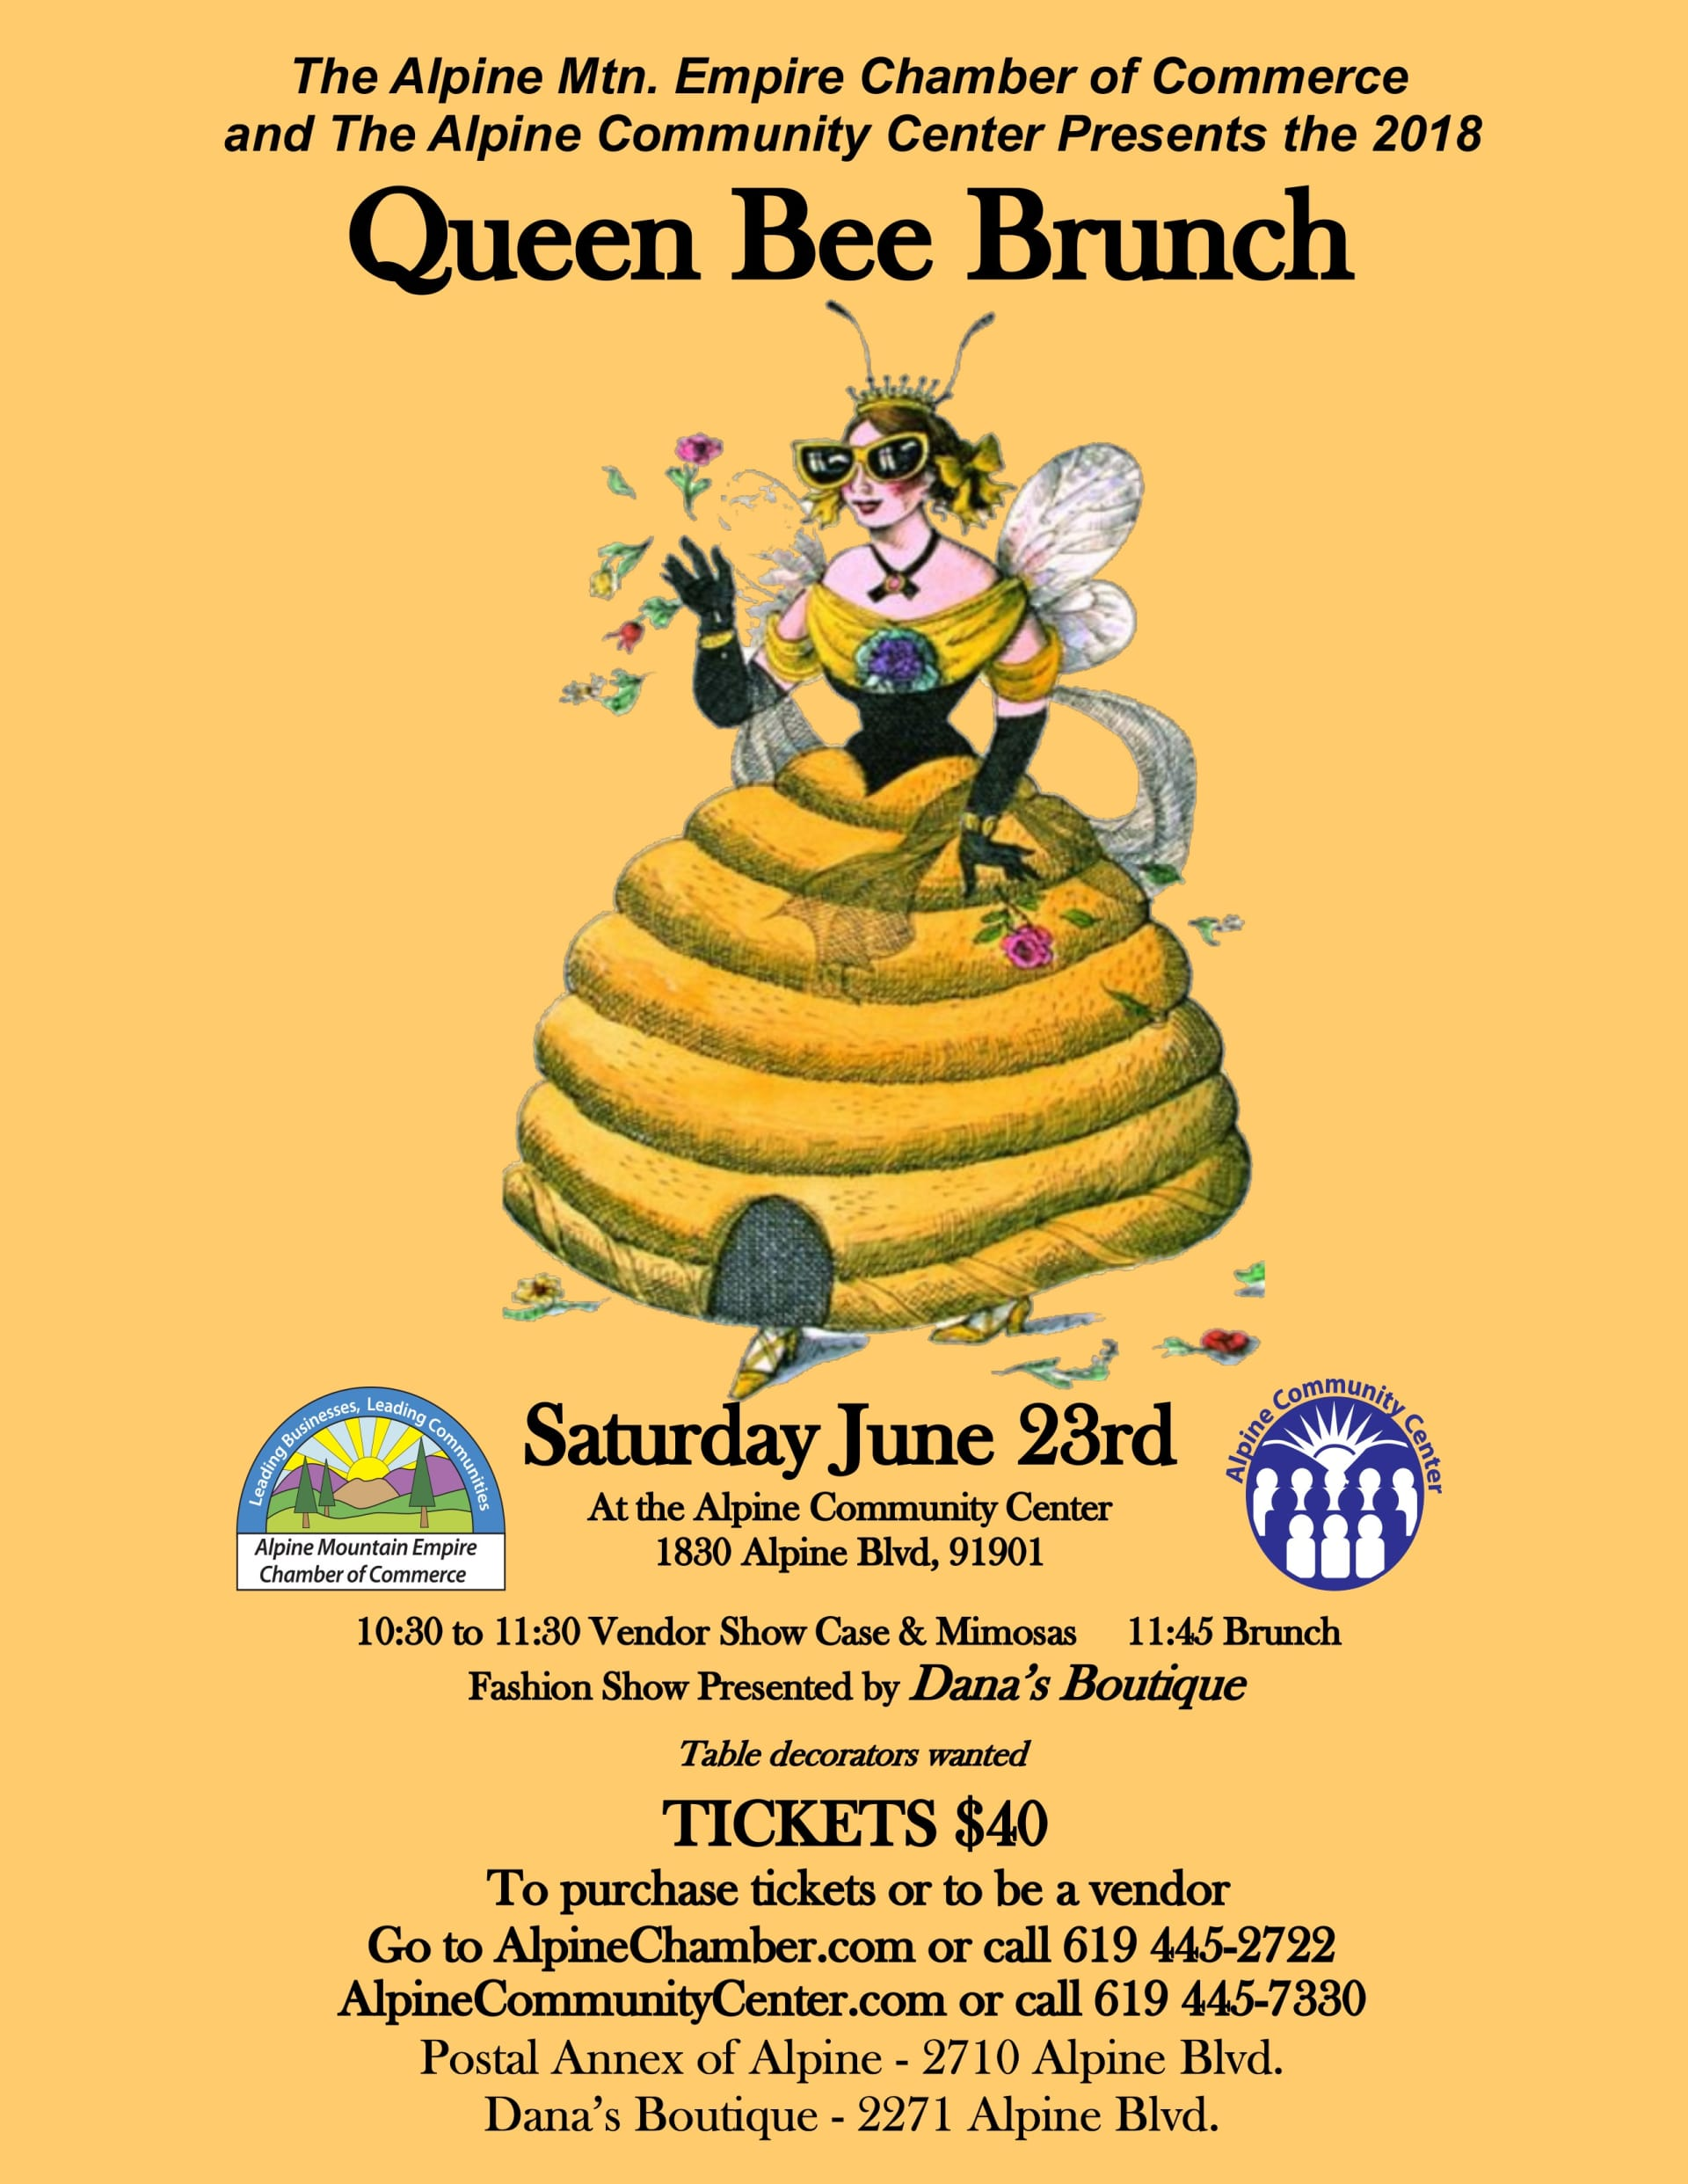 Queen-Bee-Brunch-JPEG-w1920.jpg